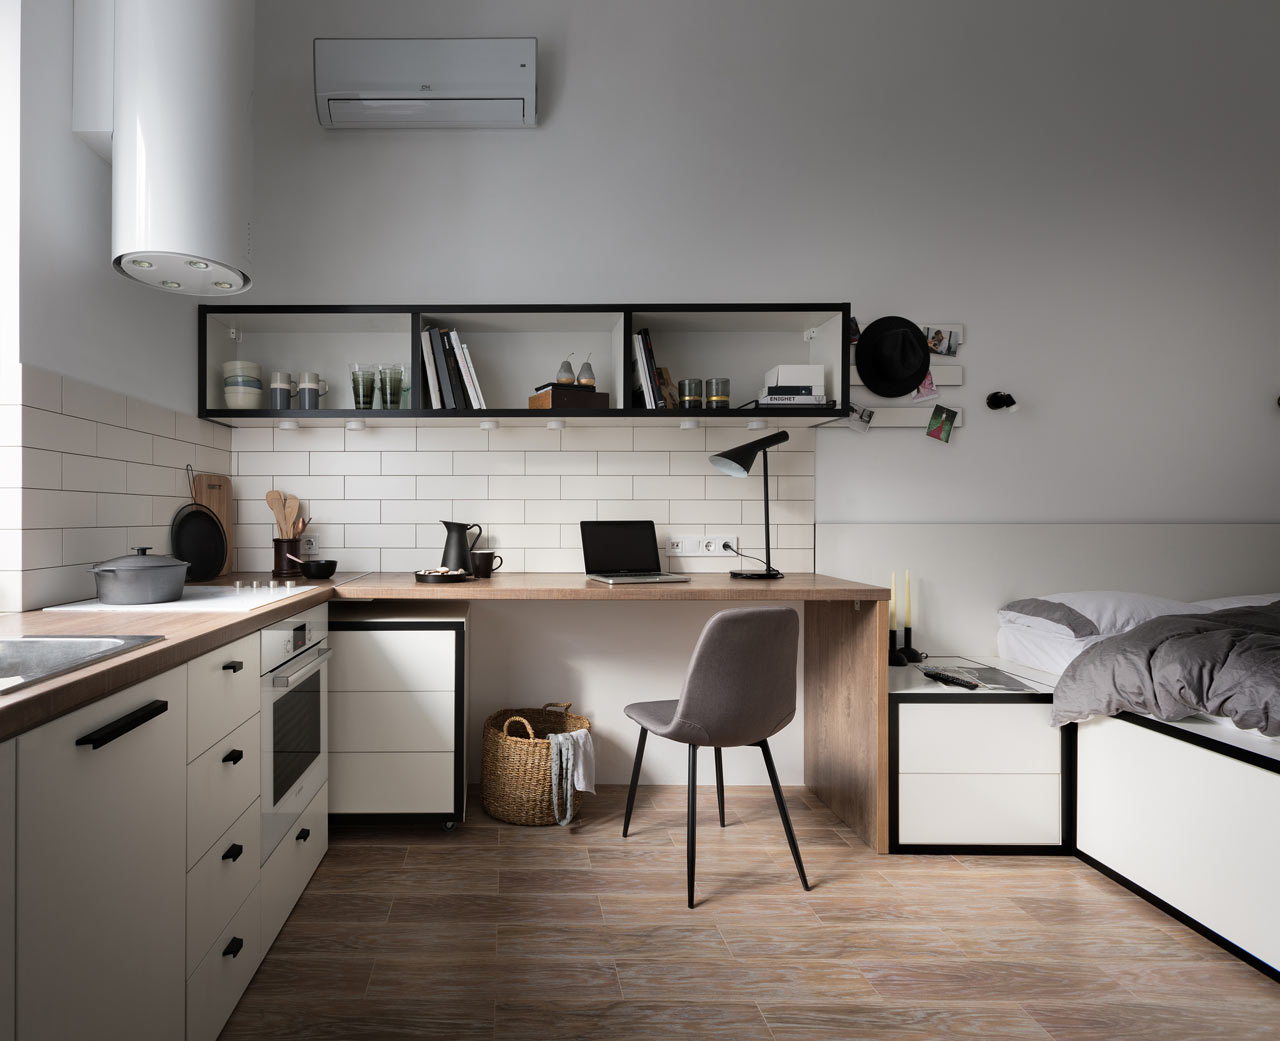 View of small one-room apartment with kitchen counter, desk, and built-in bed.